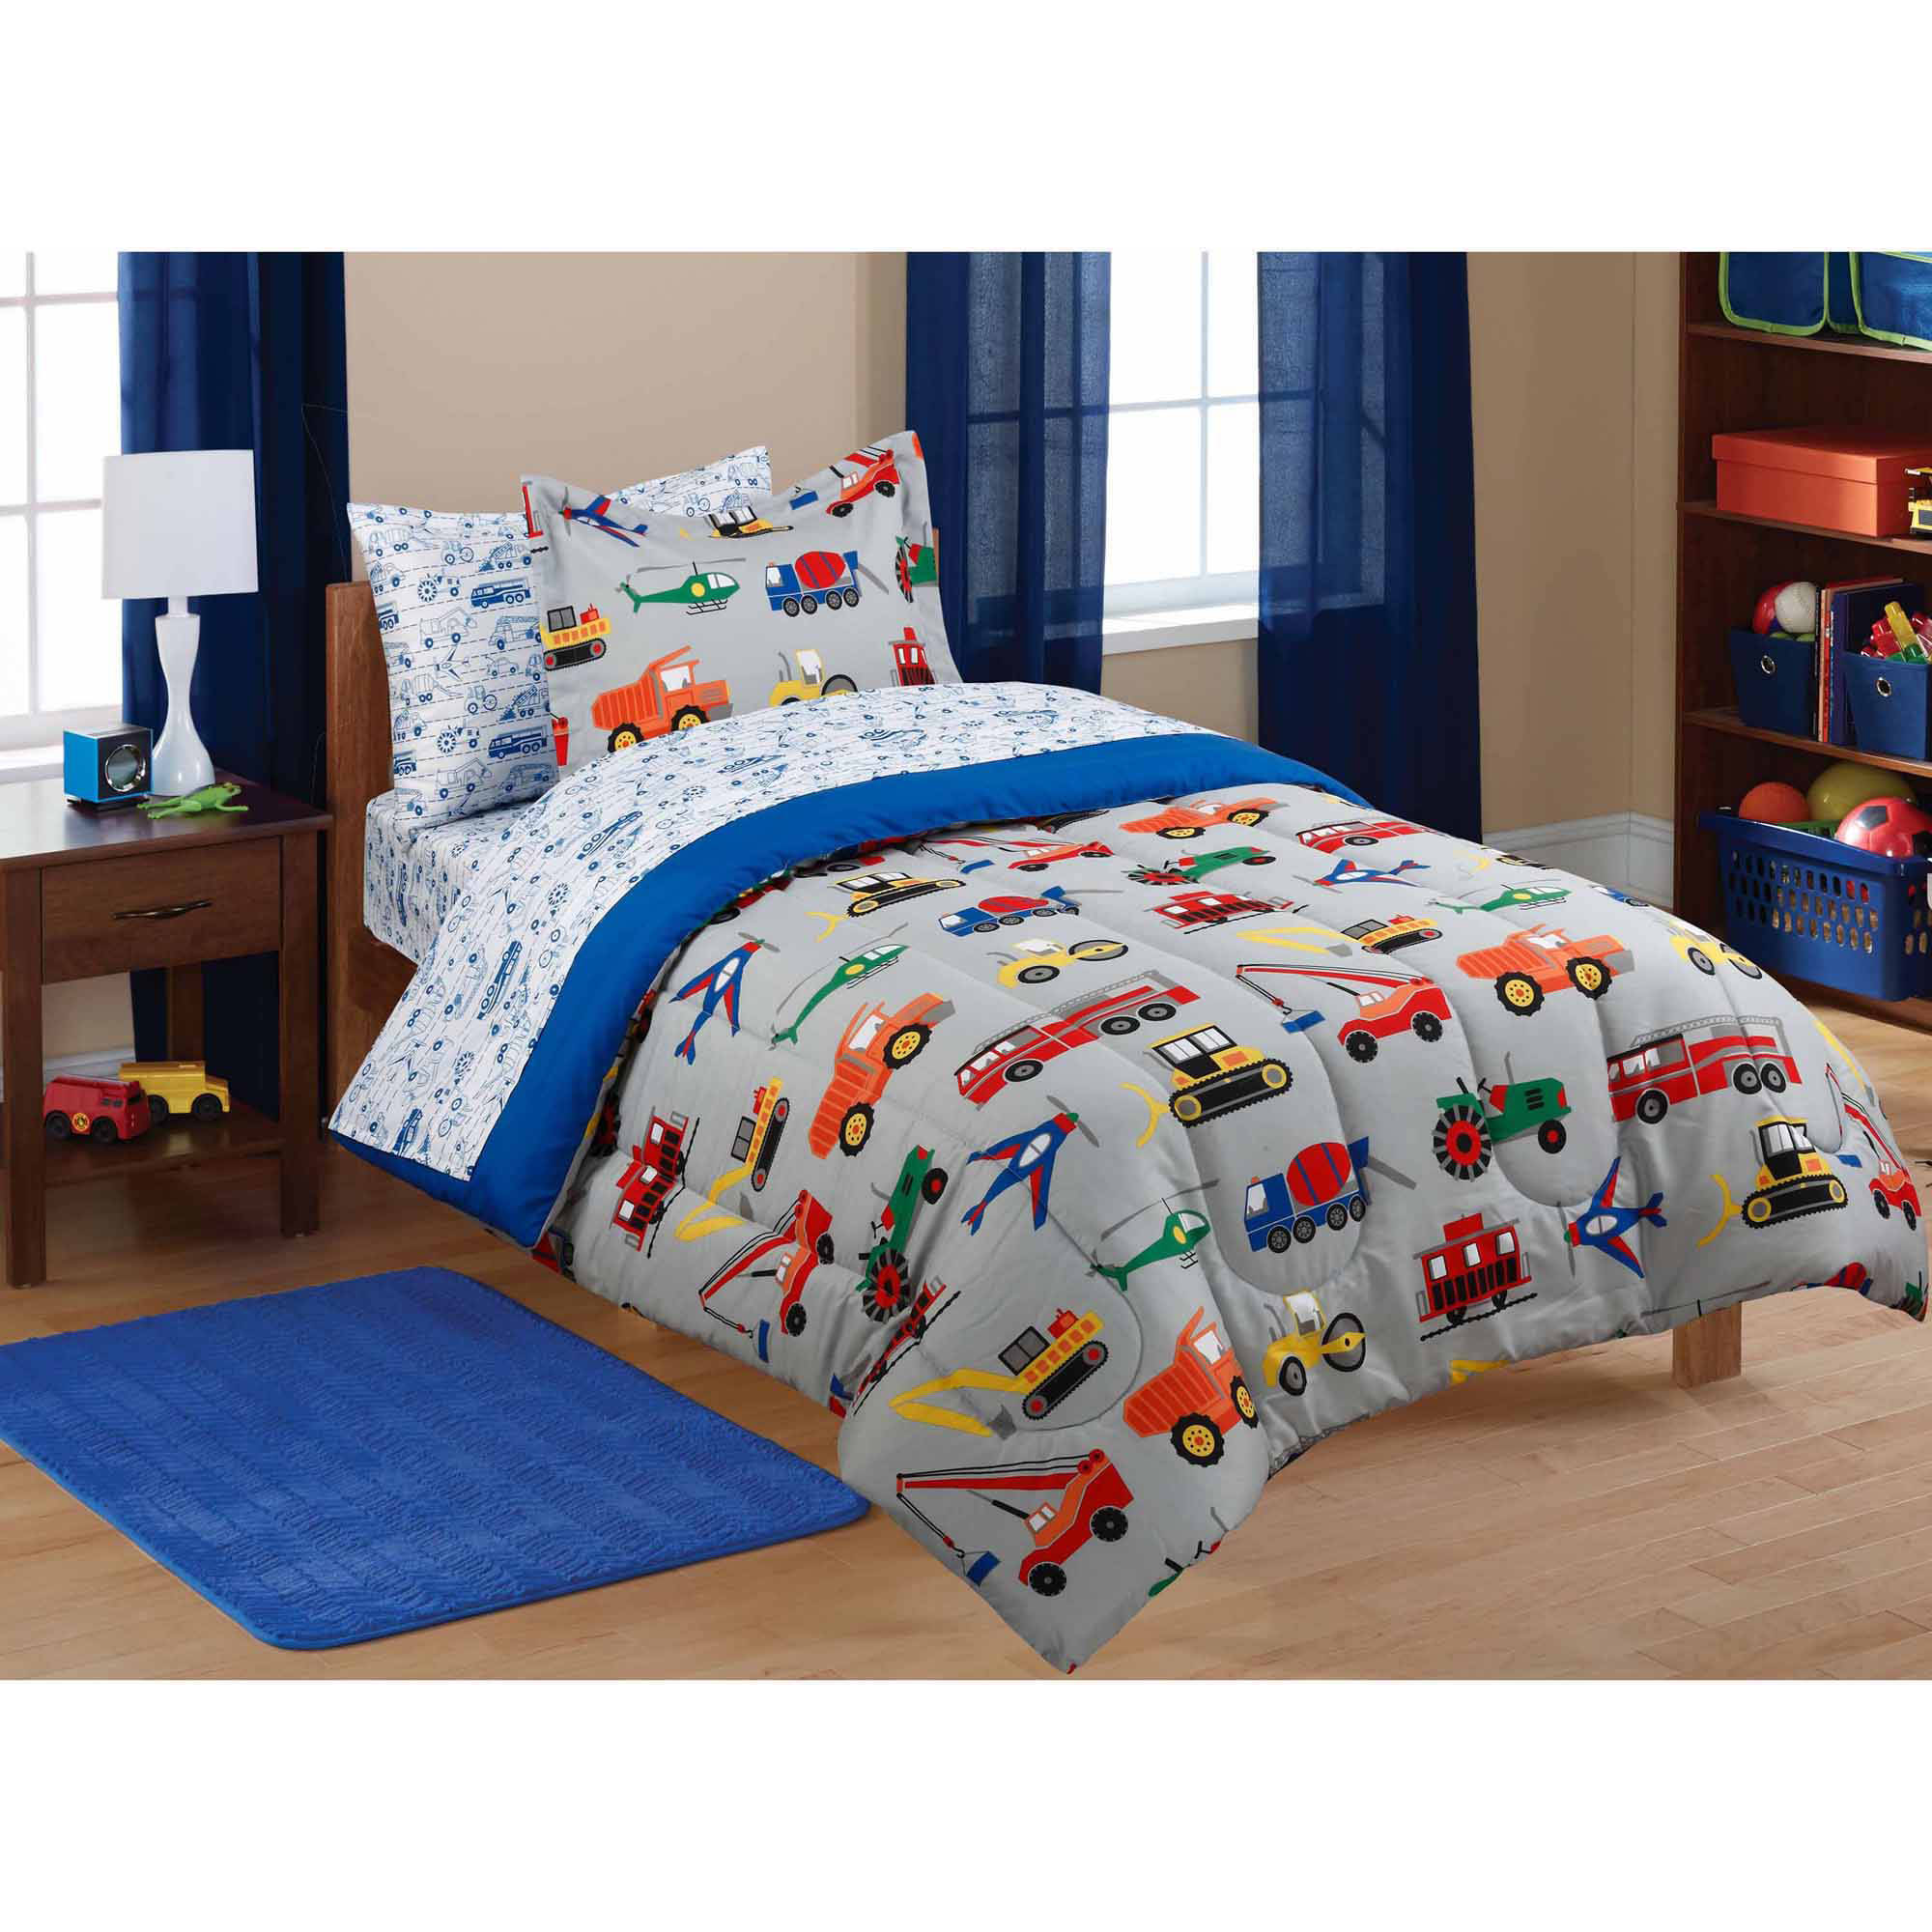 kids twin bed set Mainstays Kids' Transportation Coordinated Bed in a Bag   Walmart.com kids twin bed set